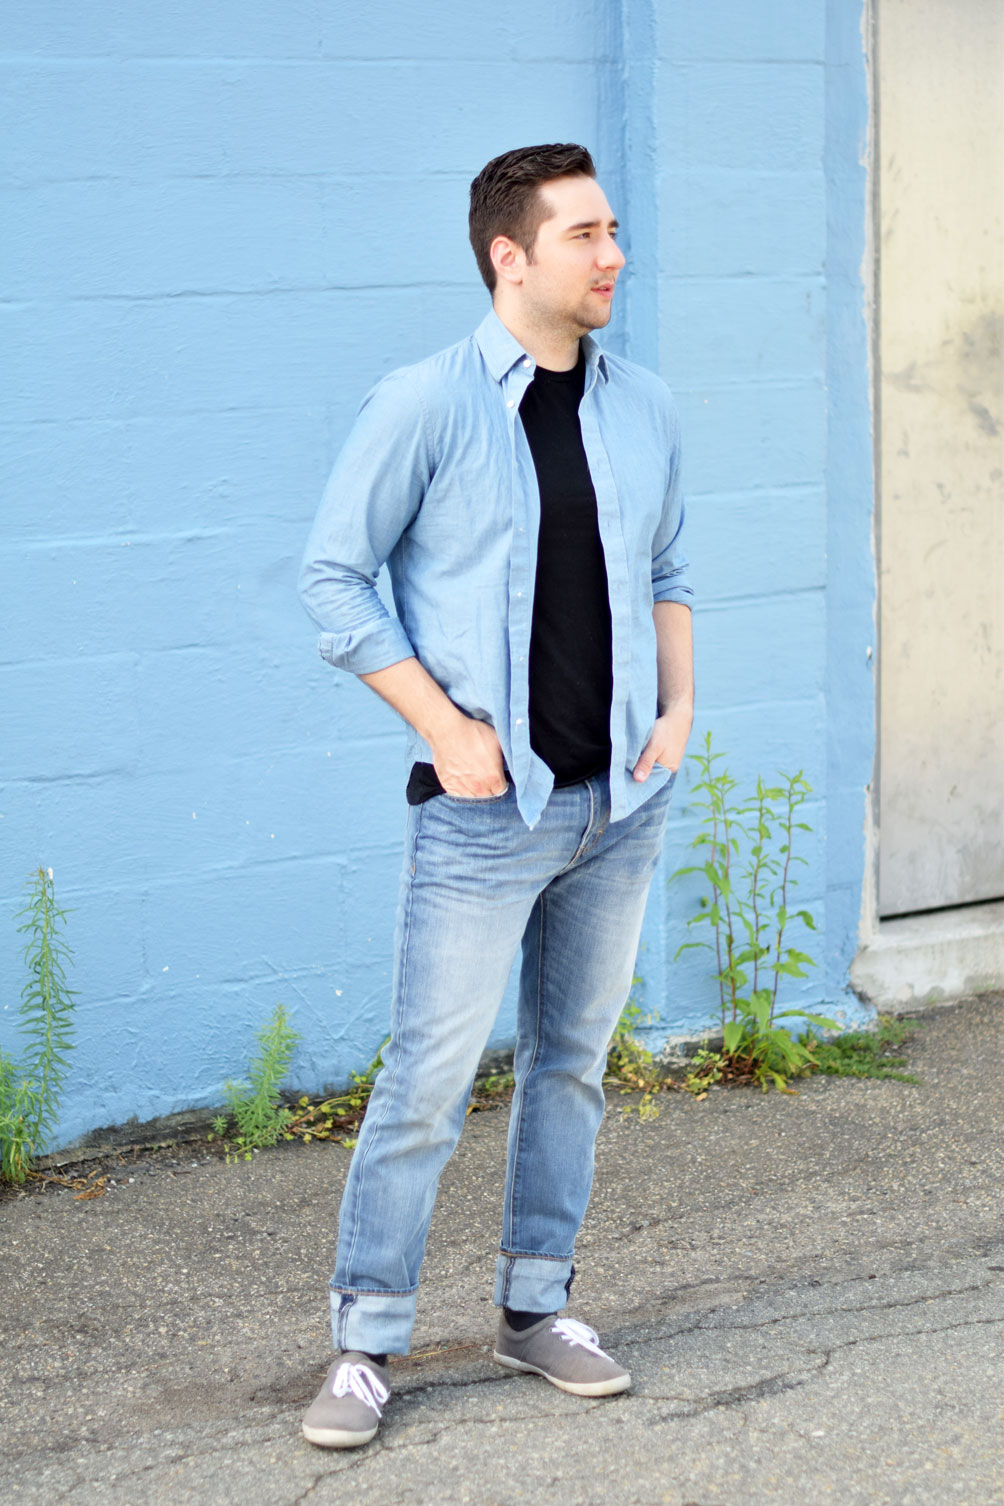 men's summer fashion outfit inspiration from one brass fox - cuffed chambray shirt with skinny jeans and sneakers